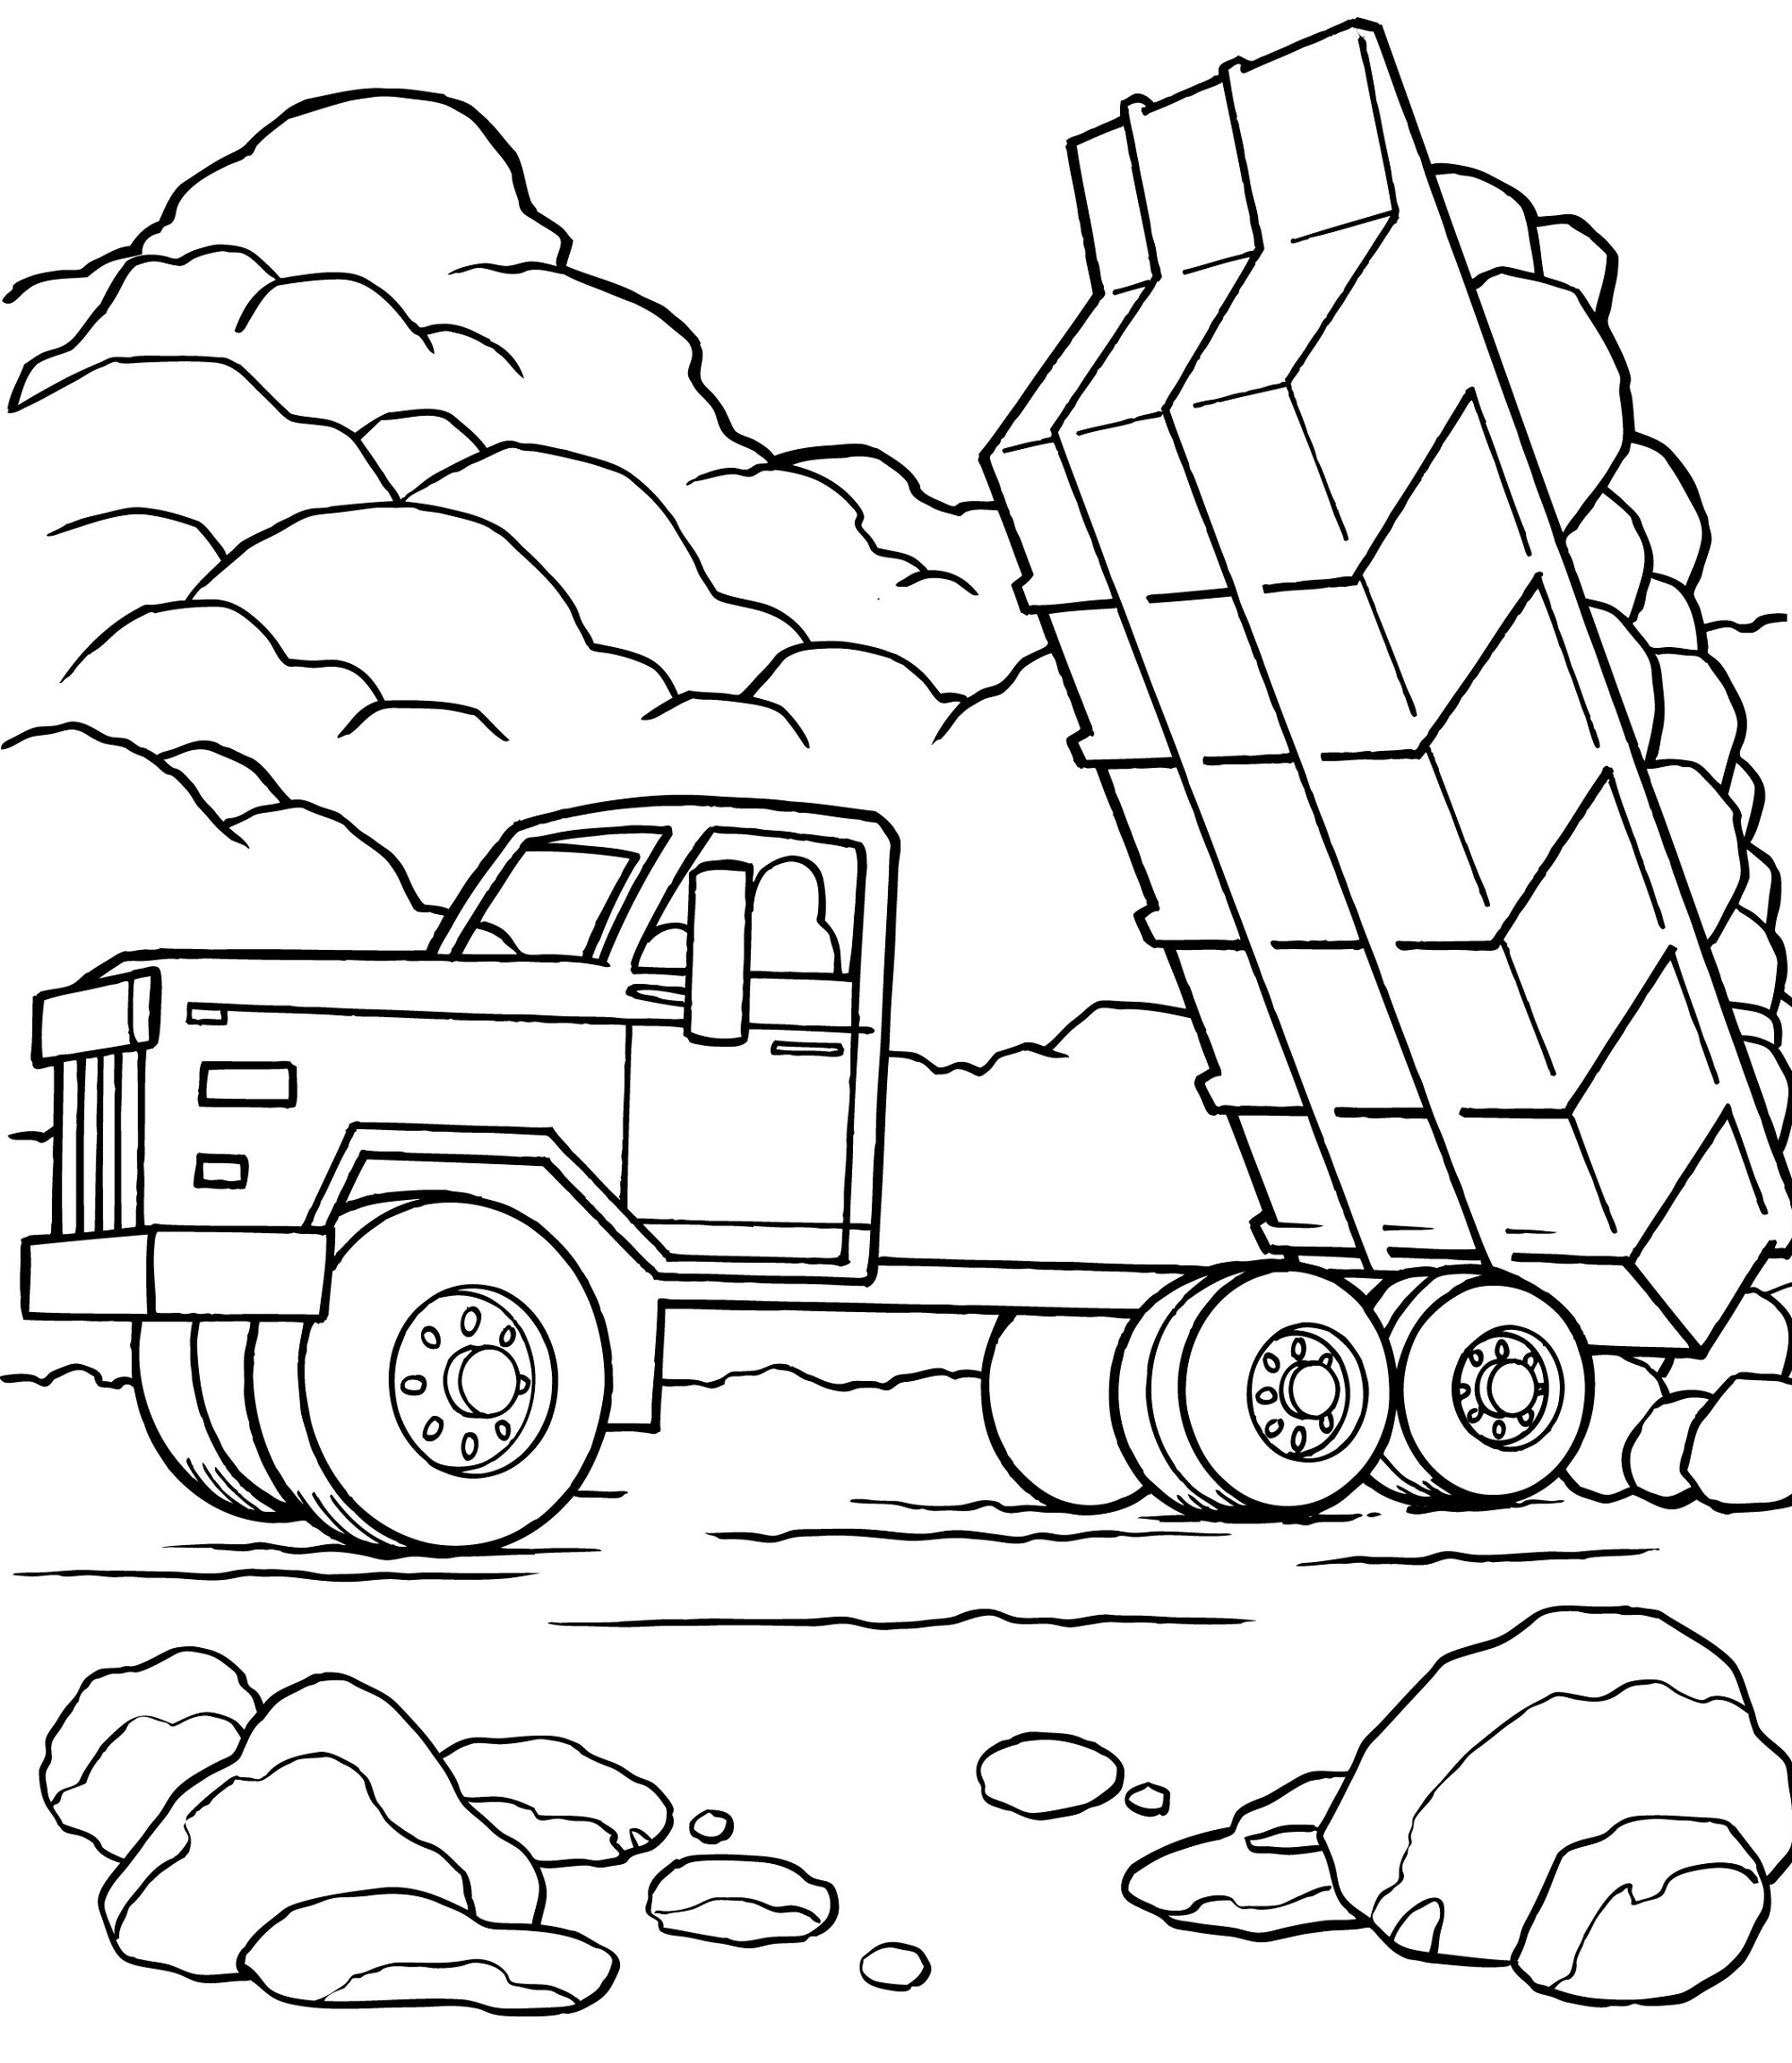 truck-color-pages-activity